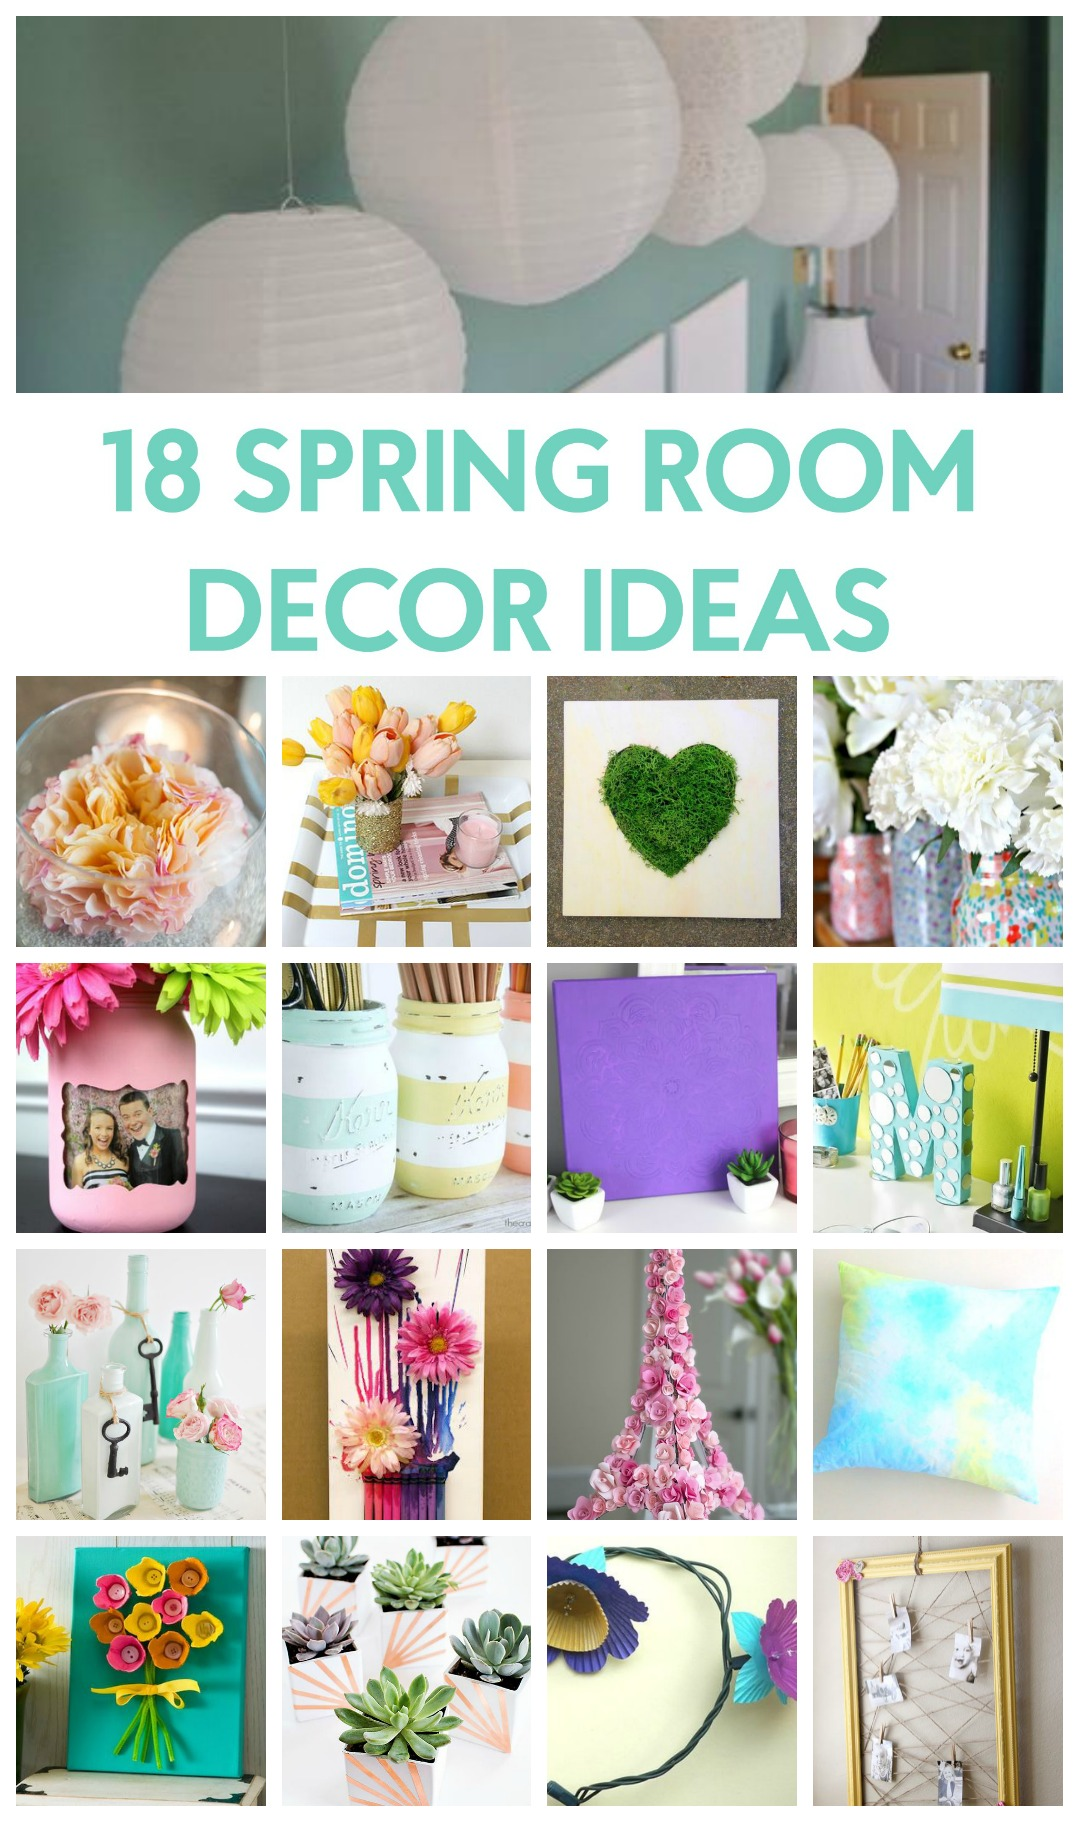 18 Diy Room Decor Ideas For Crafters: A Little Craft In Your Day